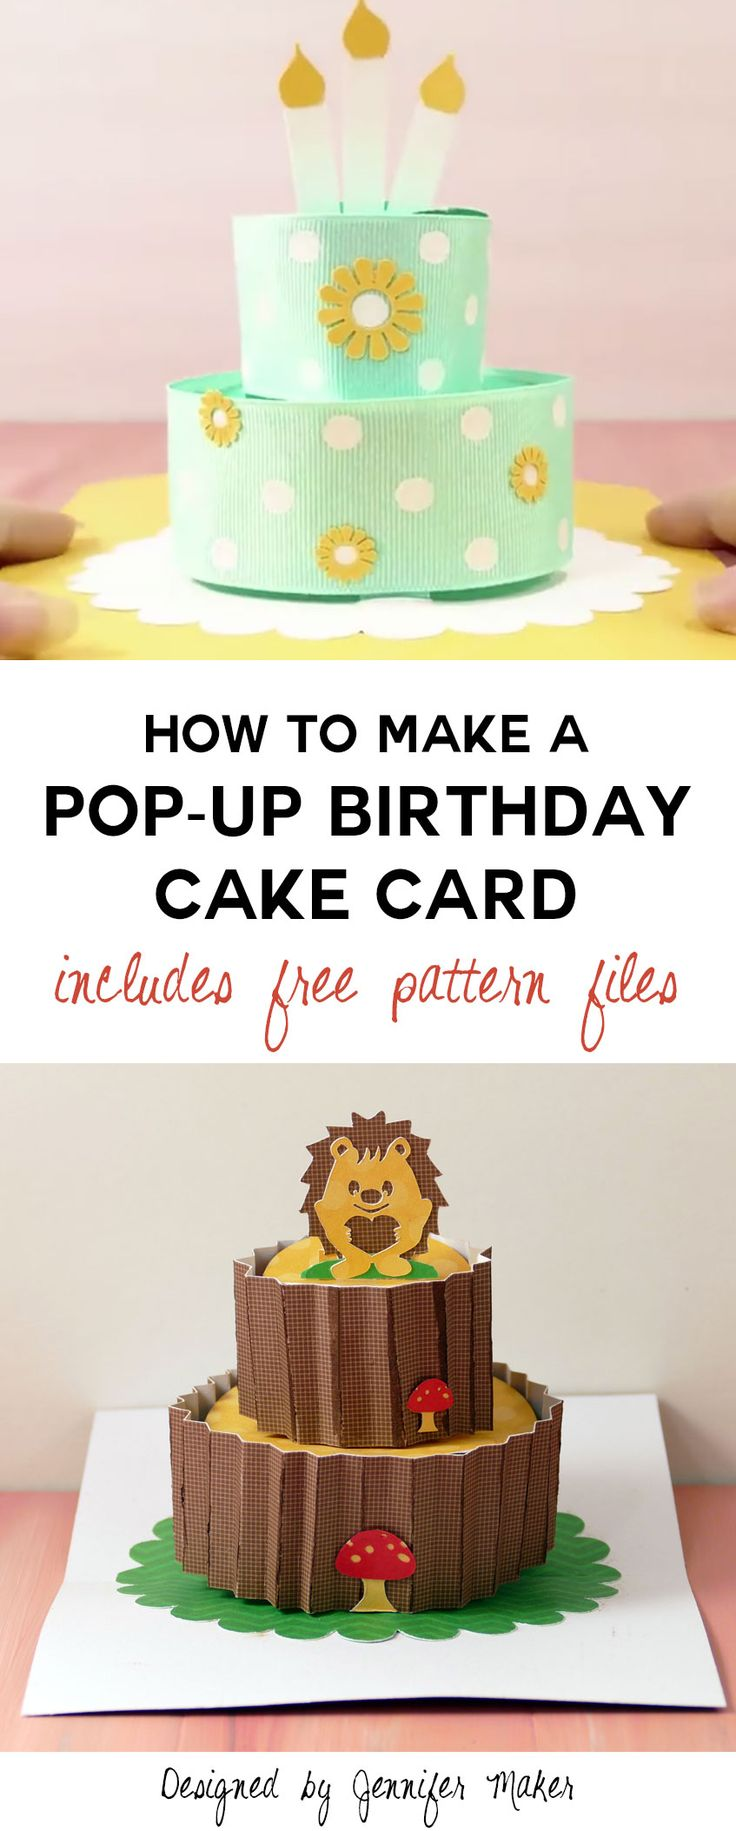 Wow! Make Handmade Cards with this Pop-Up Birthday Cake Card - free pattern and SVG files, plus an assembly video. Too cool.